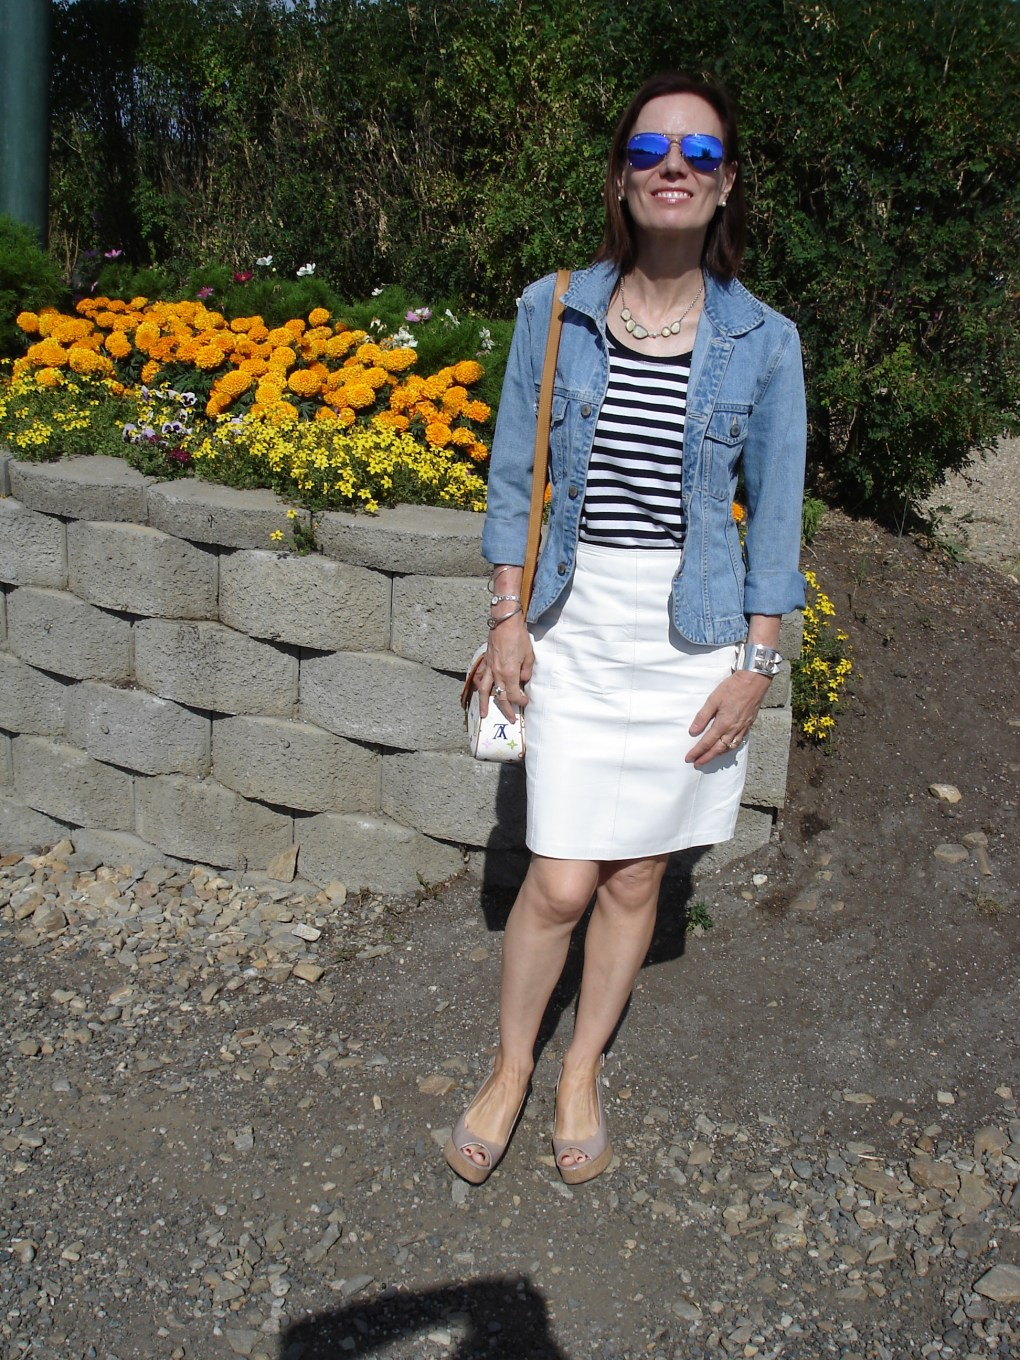 over50fashion tailored denim jacket styled for Sunday brunch in summer